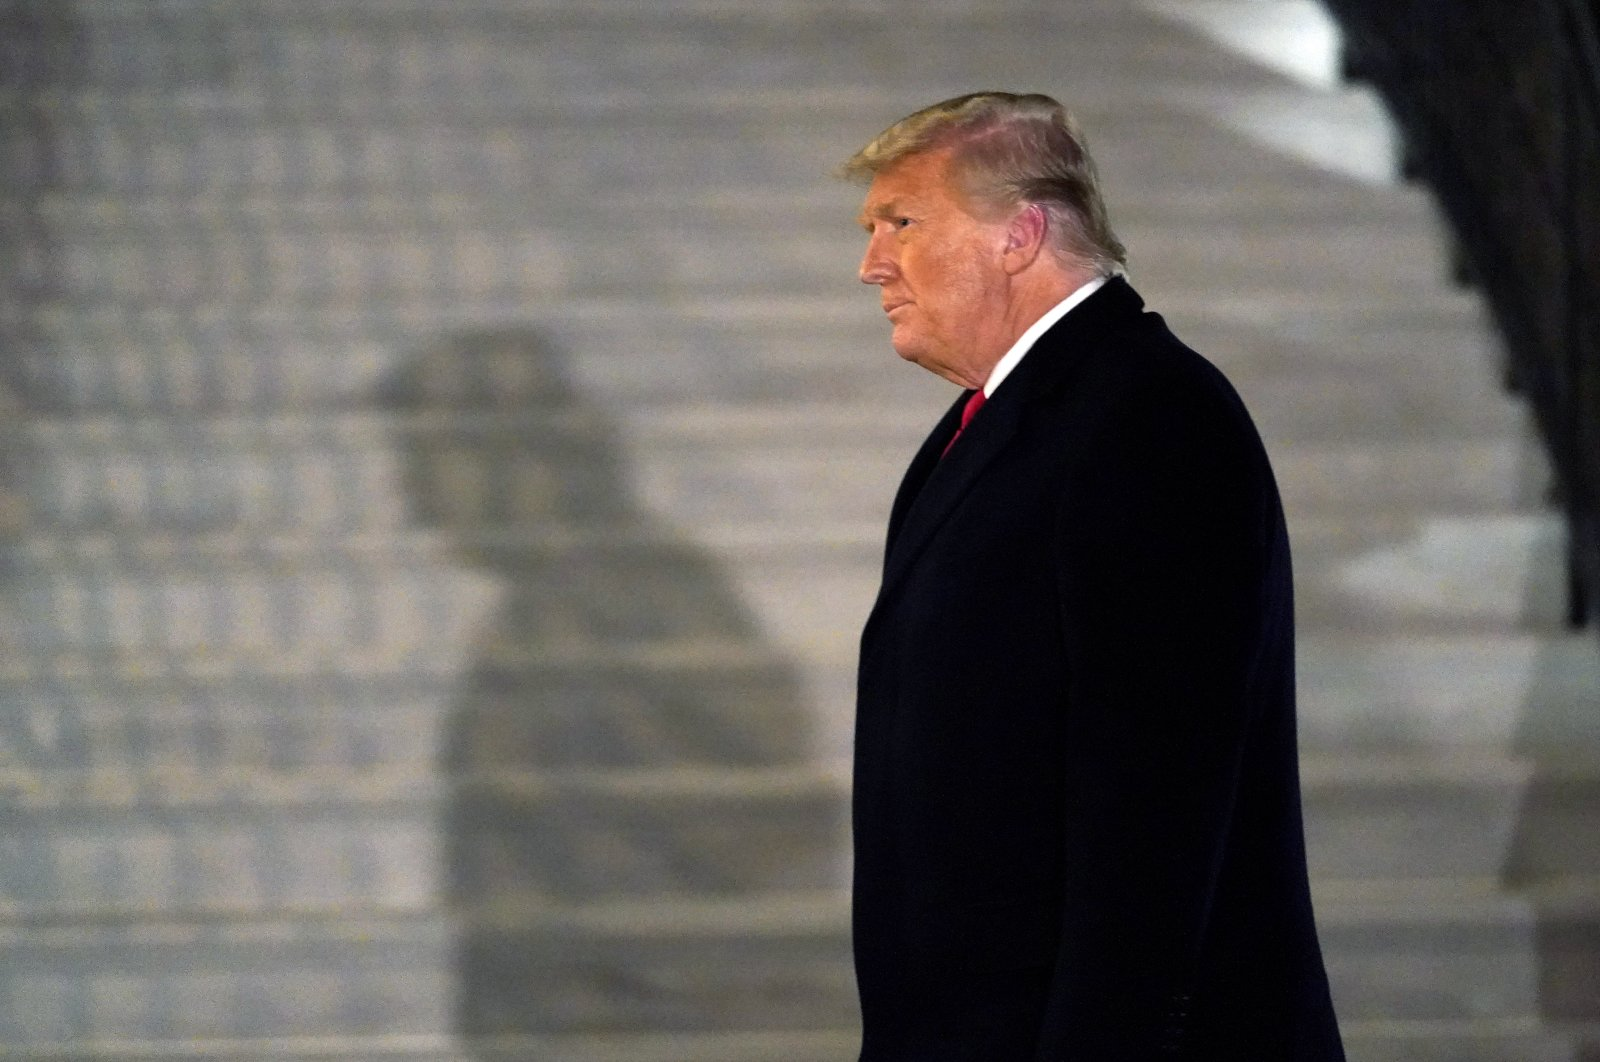 U.S. President Donald Trump arrives on the South Lawn of the White House, in Washington, after returning from Texas, Jan. 12, 2021. (AP Photo)